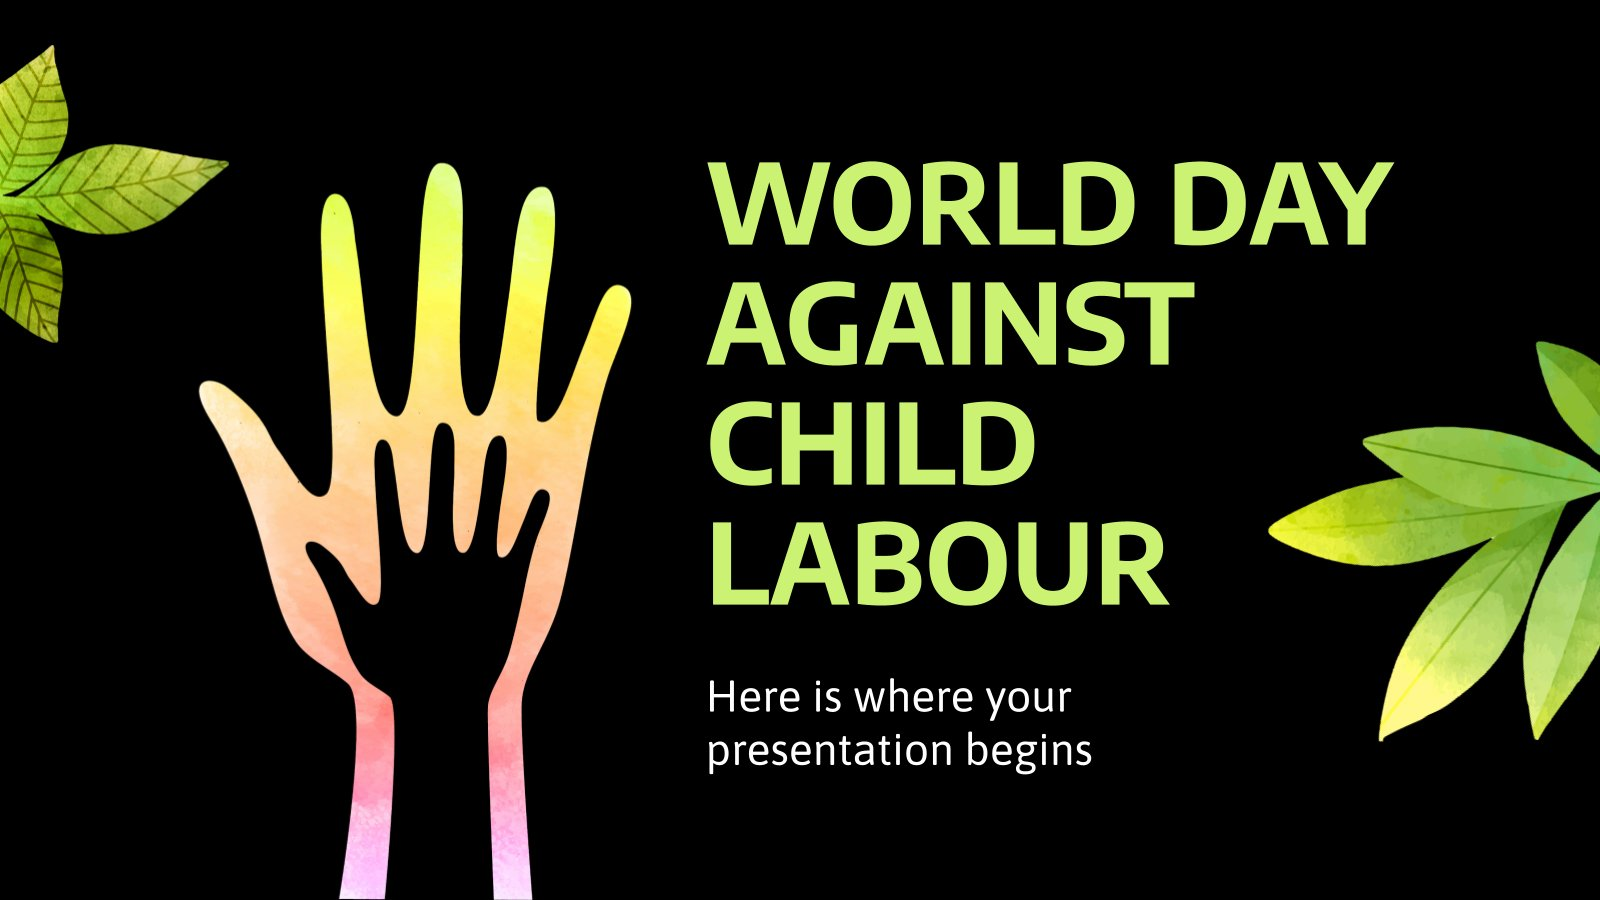 World Day Against Child Labour presentation template